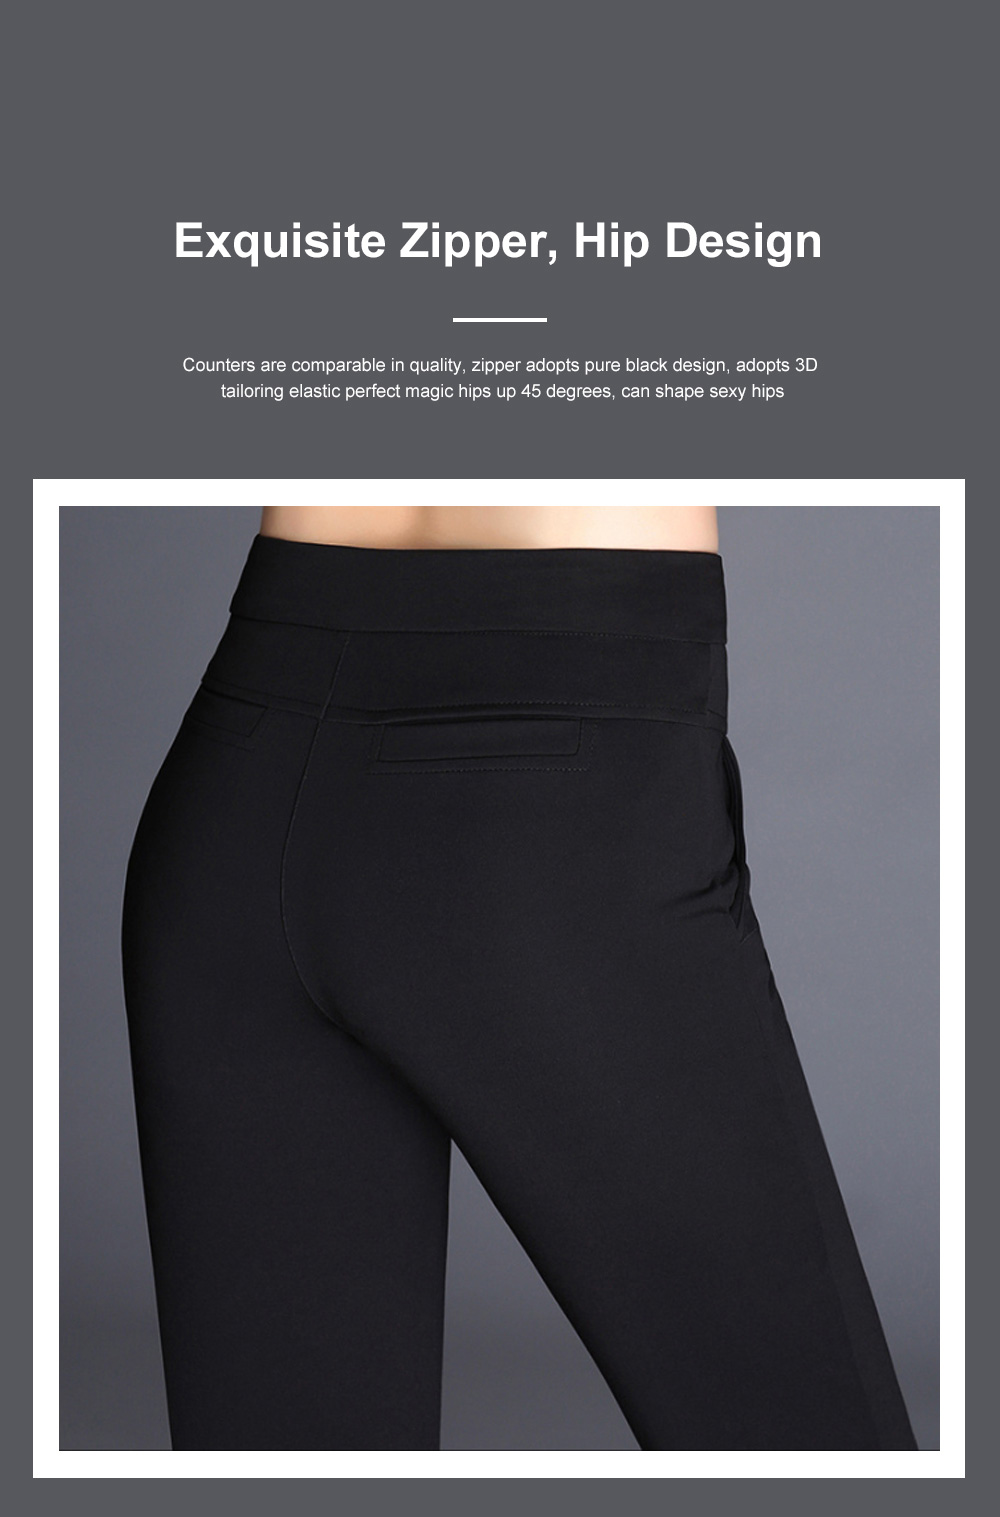 Plus Size Pants Female Casual Long Pants Ladies Office Trousers High Waist Slimming Black Straight Customized Stretch Big Size Slacks 4